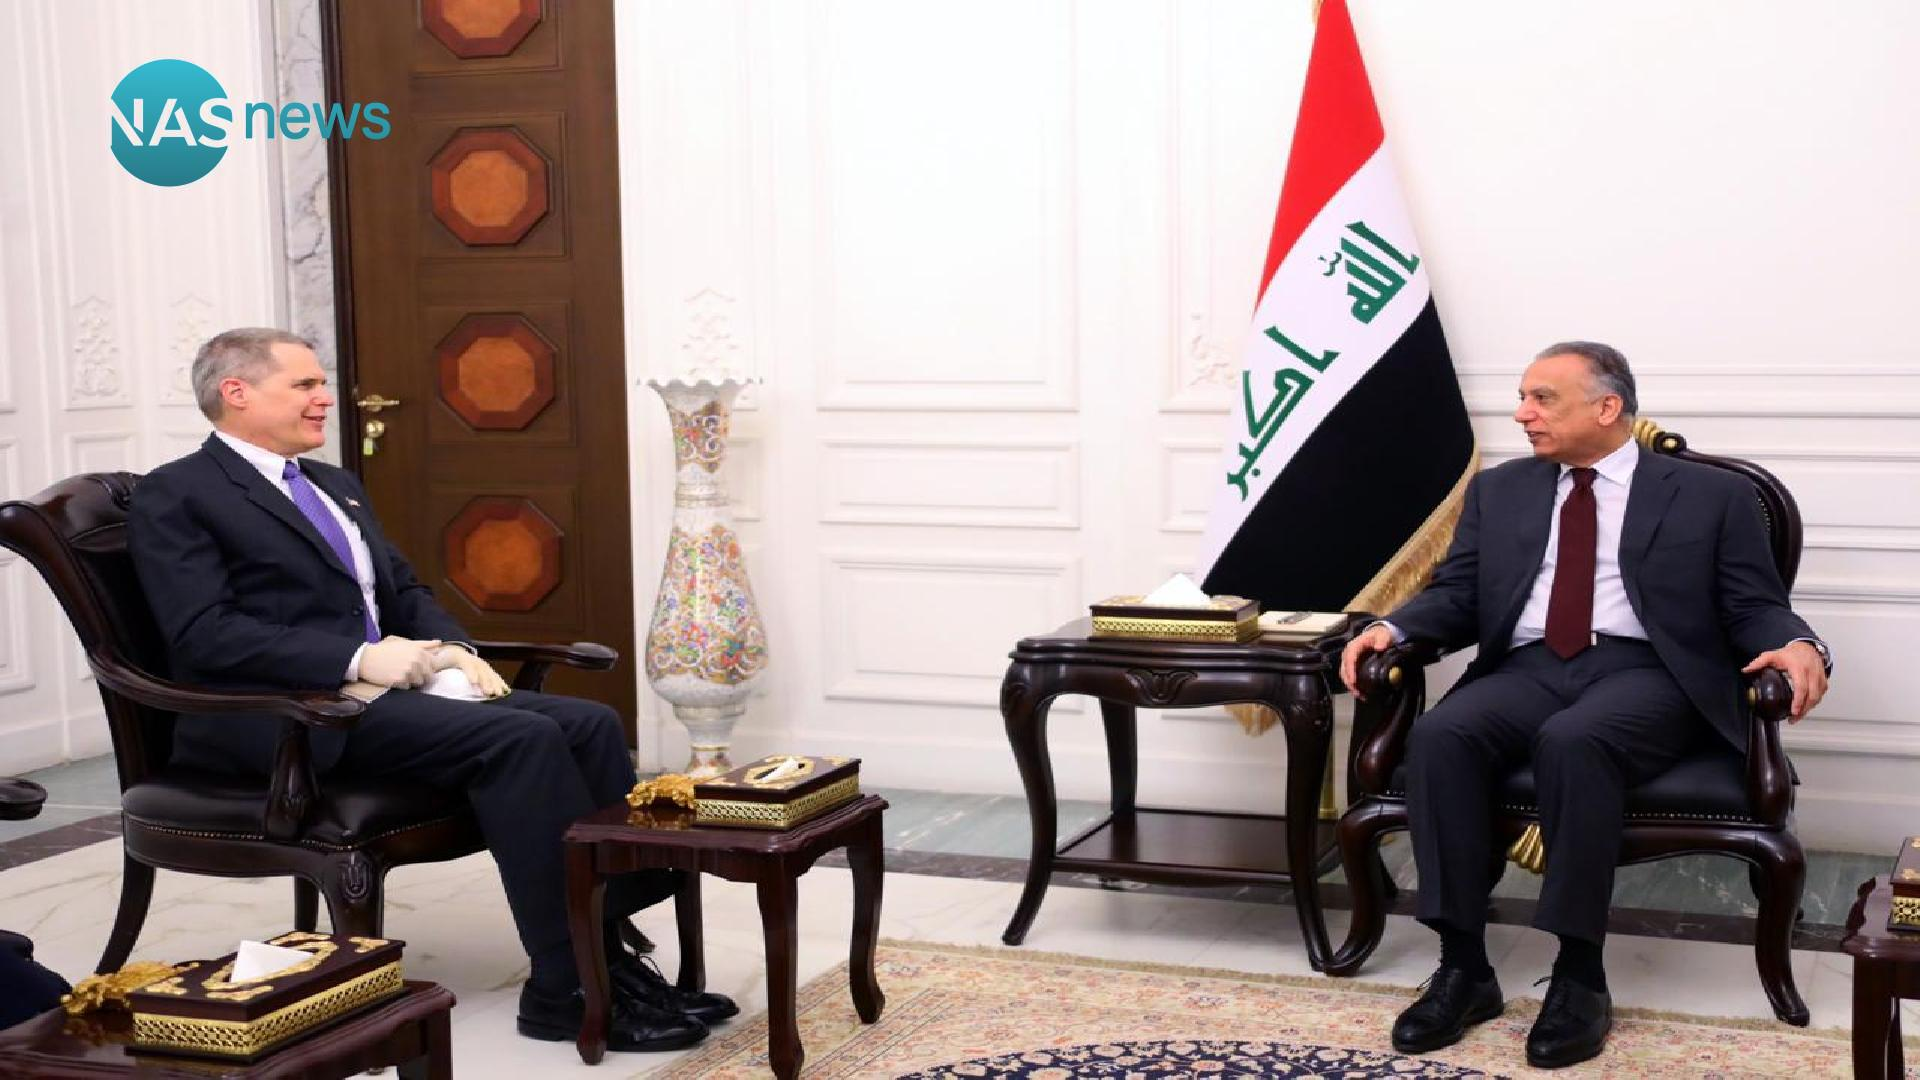 Report: An opportunity to move the relationship between Iraq and America from friendship to partnership or even an 'alliance'!